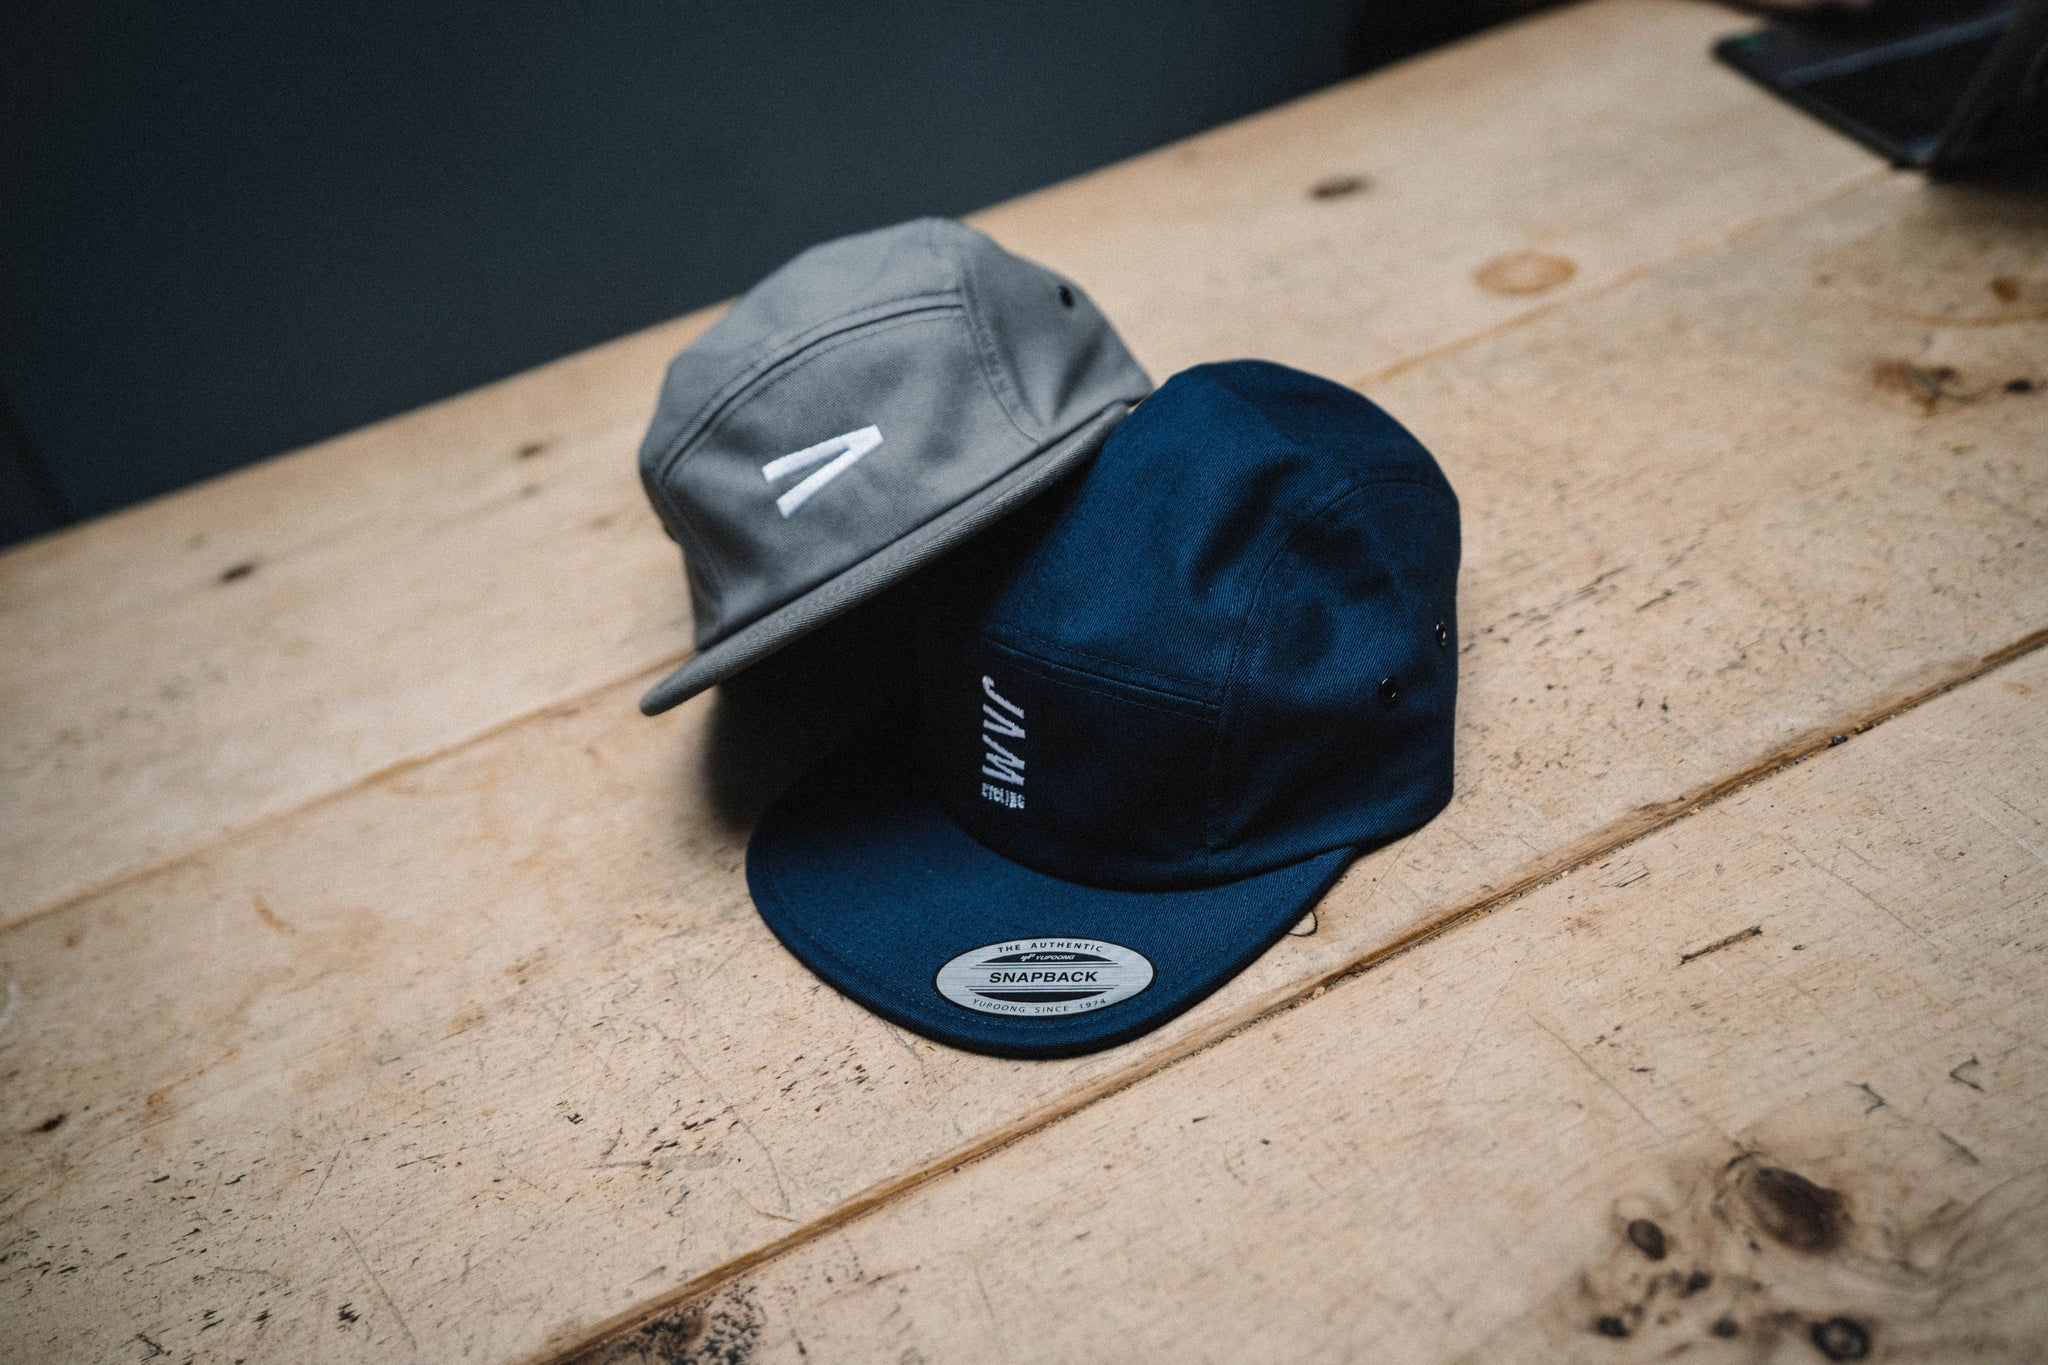 Navy and Grey JAM caps sitting together on a light wooden desk